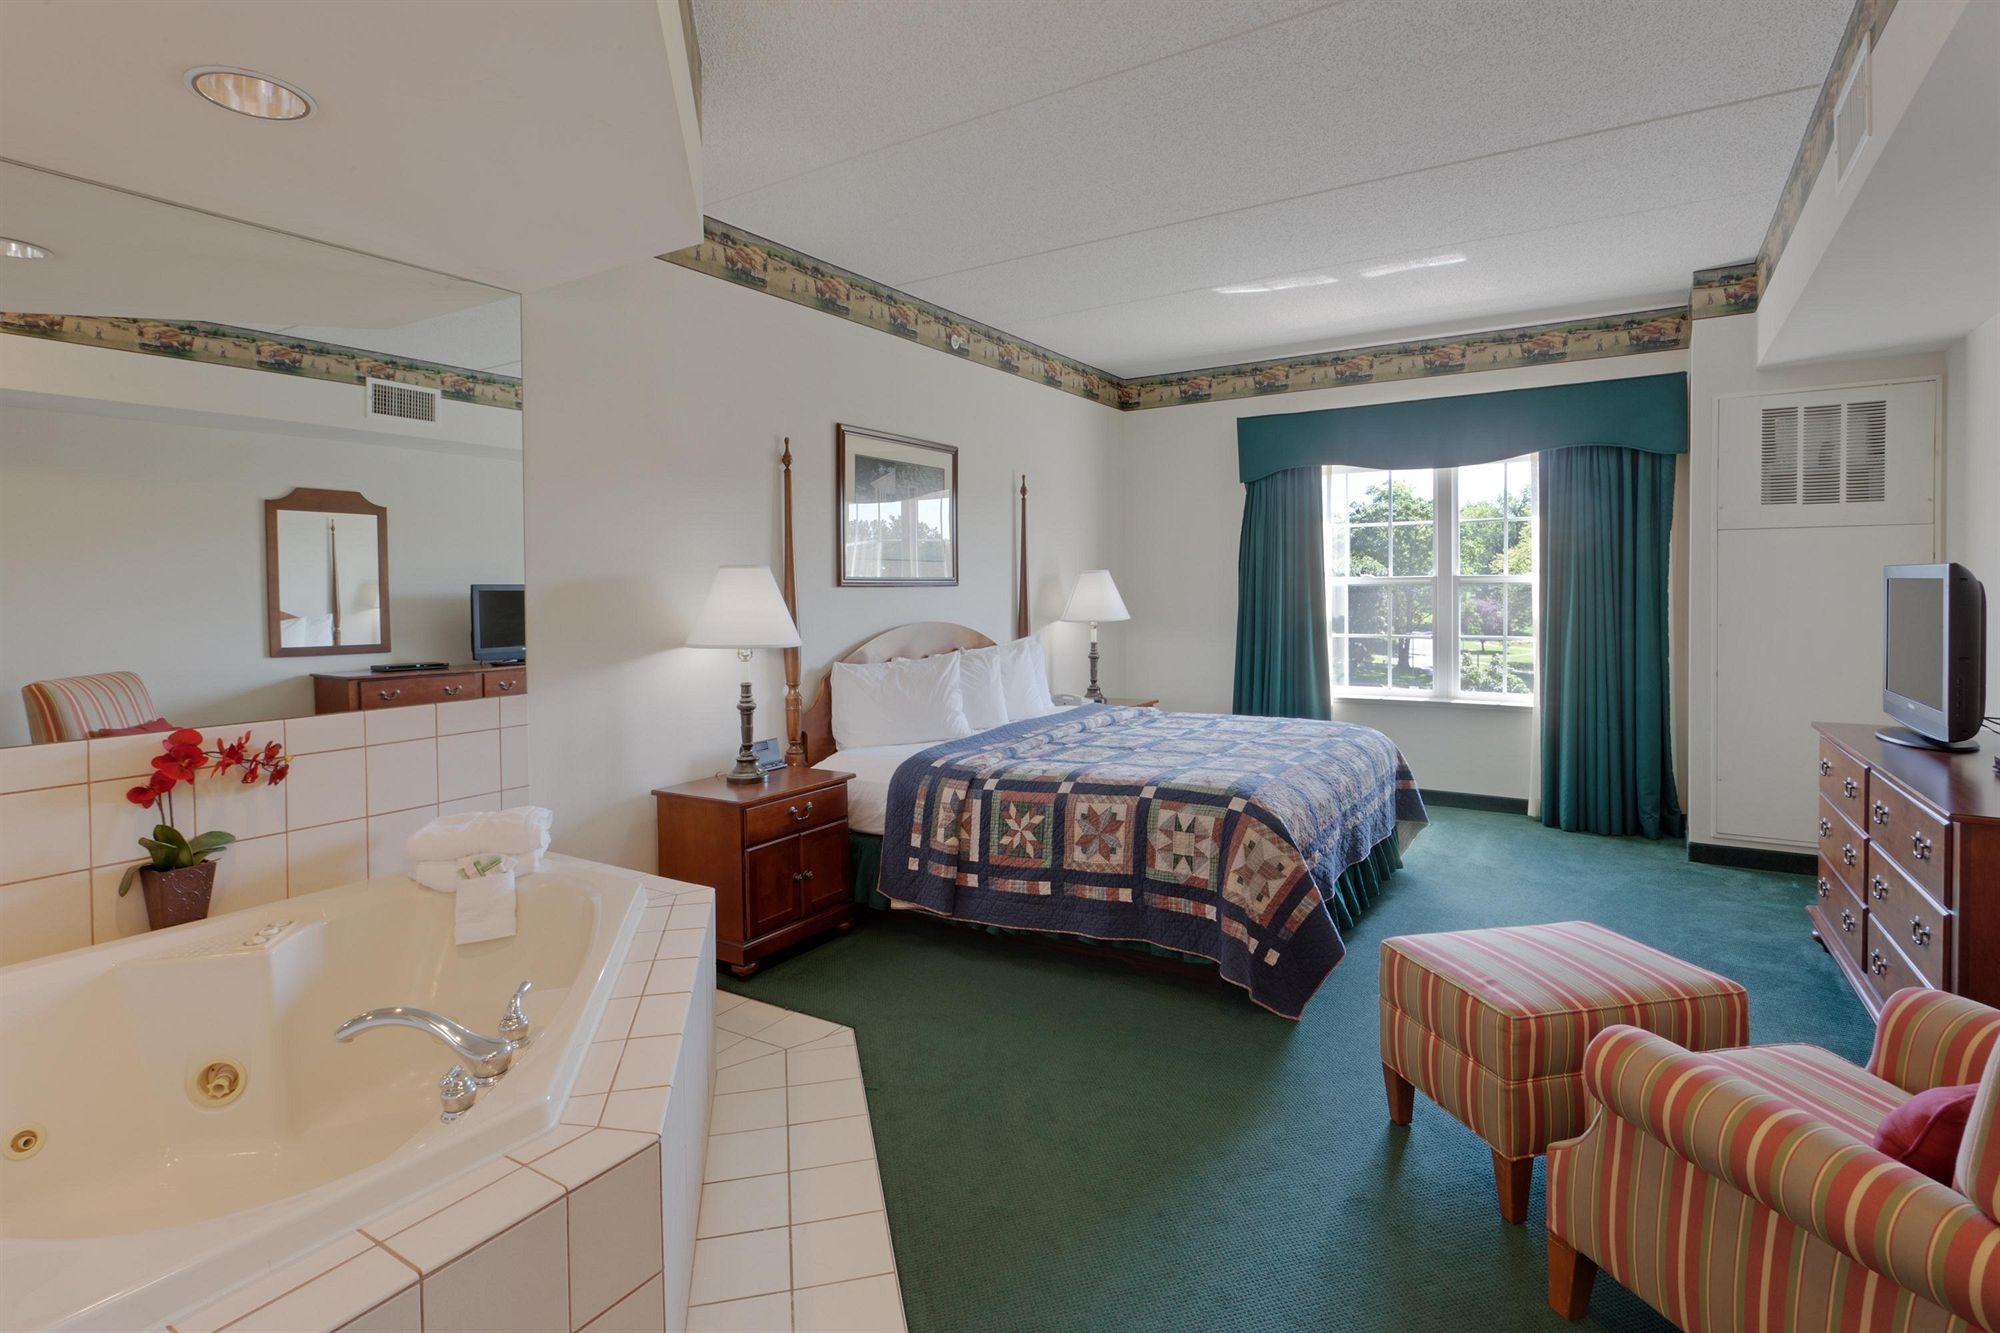 Lancaster Hotel Coupons for Lancaster, Pennsylvania